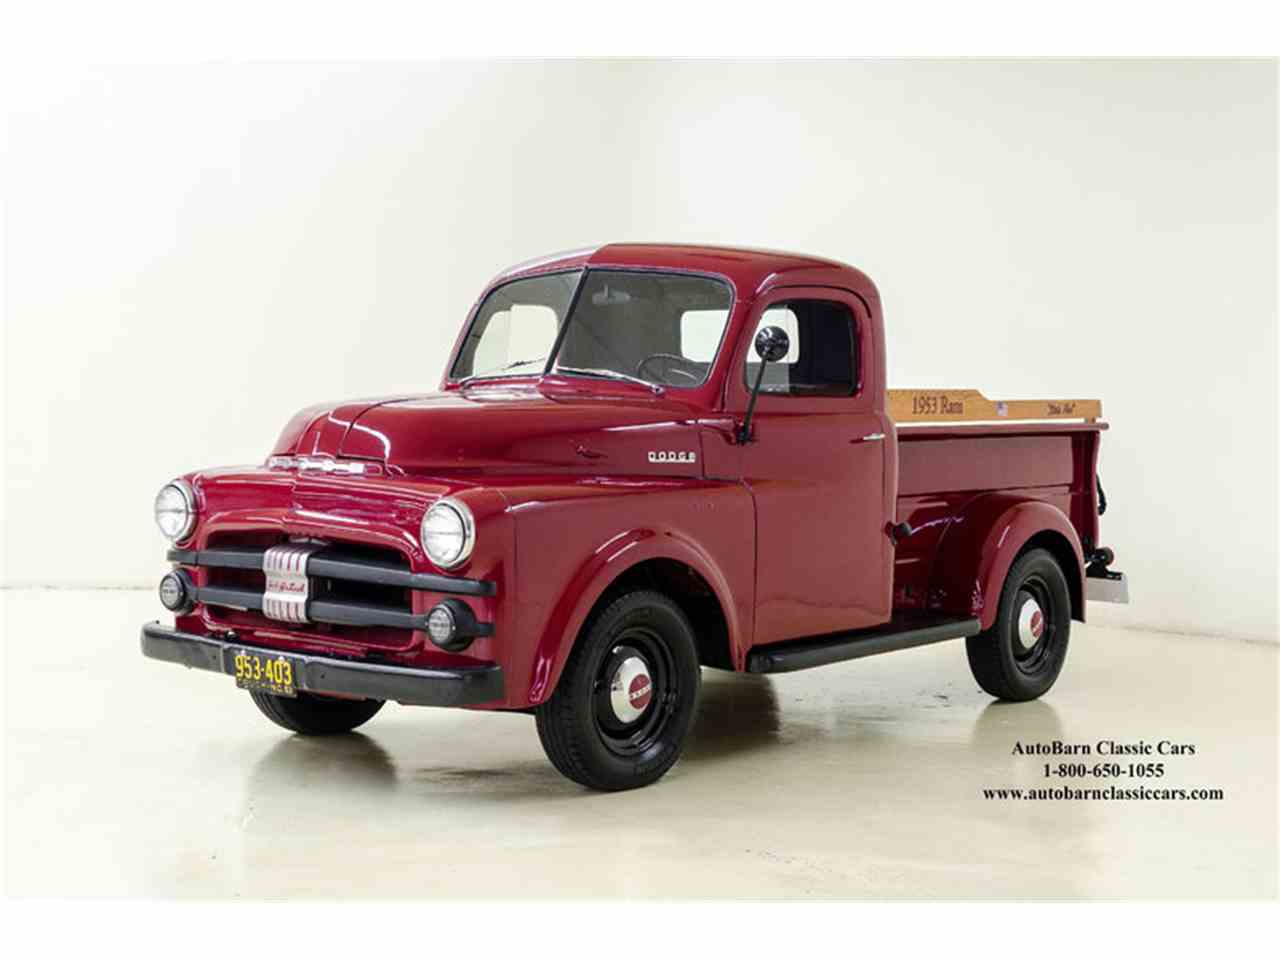 1953 dodge truck flatbed images galleries with a bite. Black Bedroom Furniture Sets. Home Design Ideas